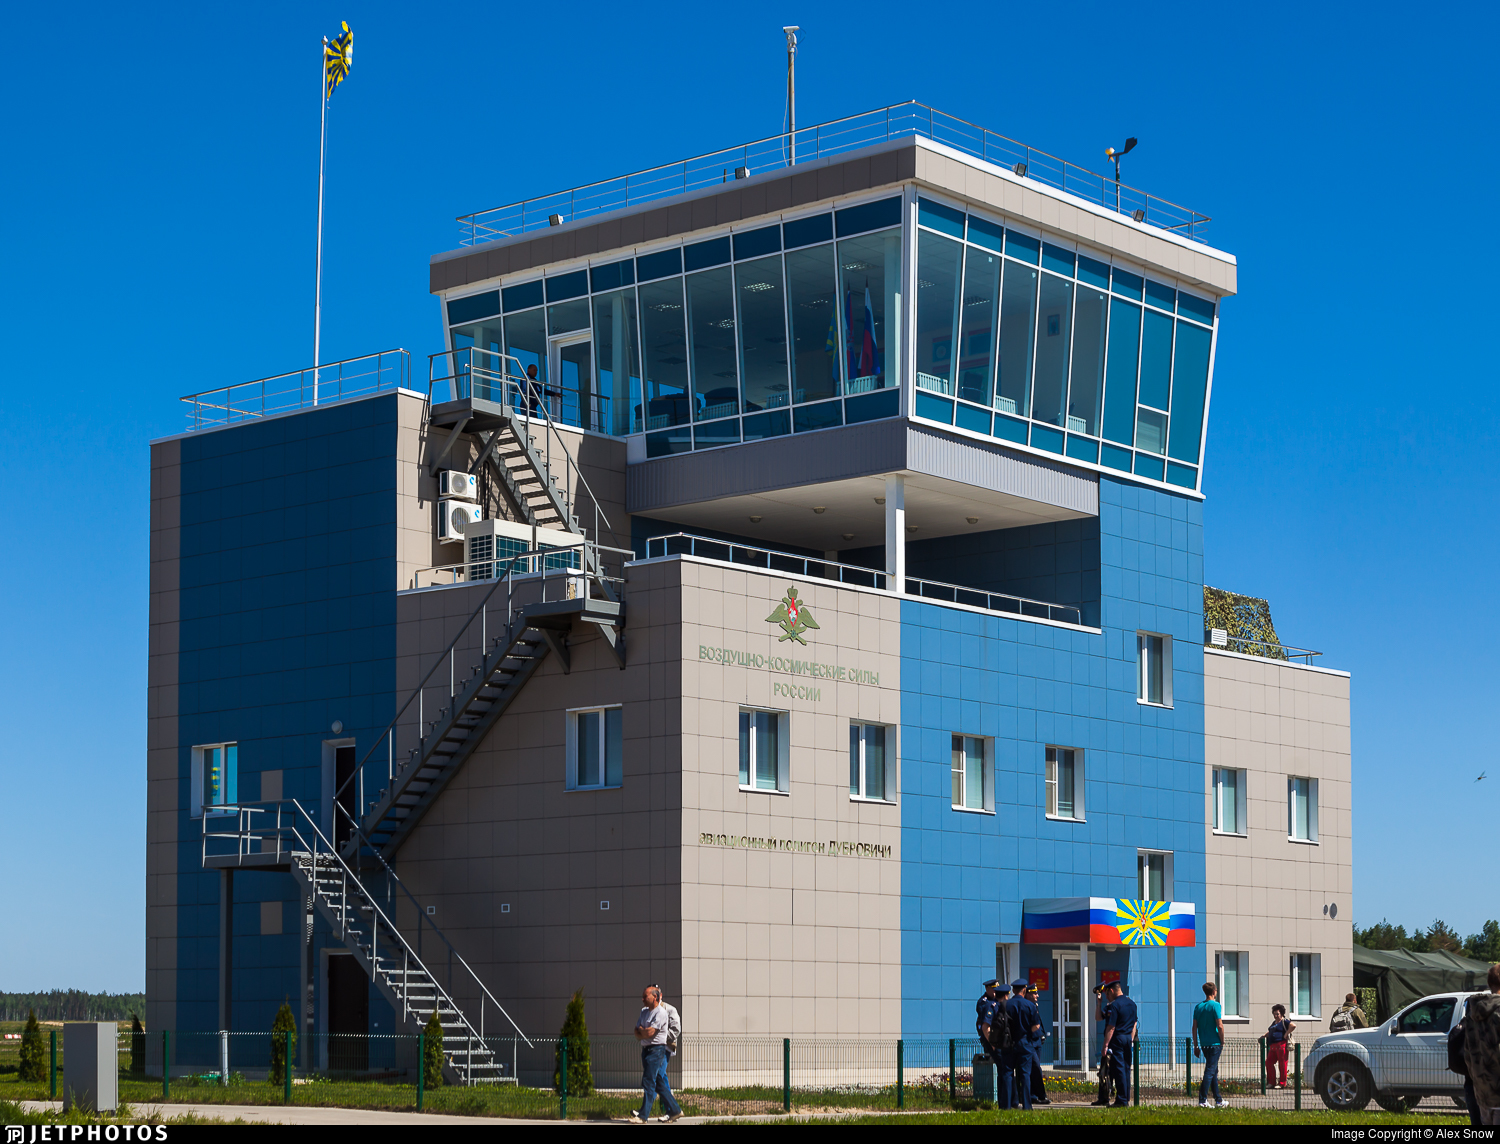 - Airport - Control Tower